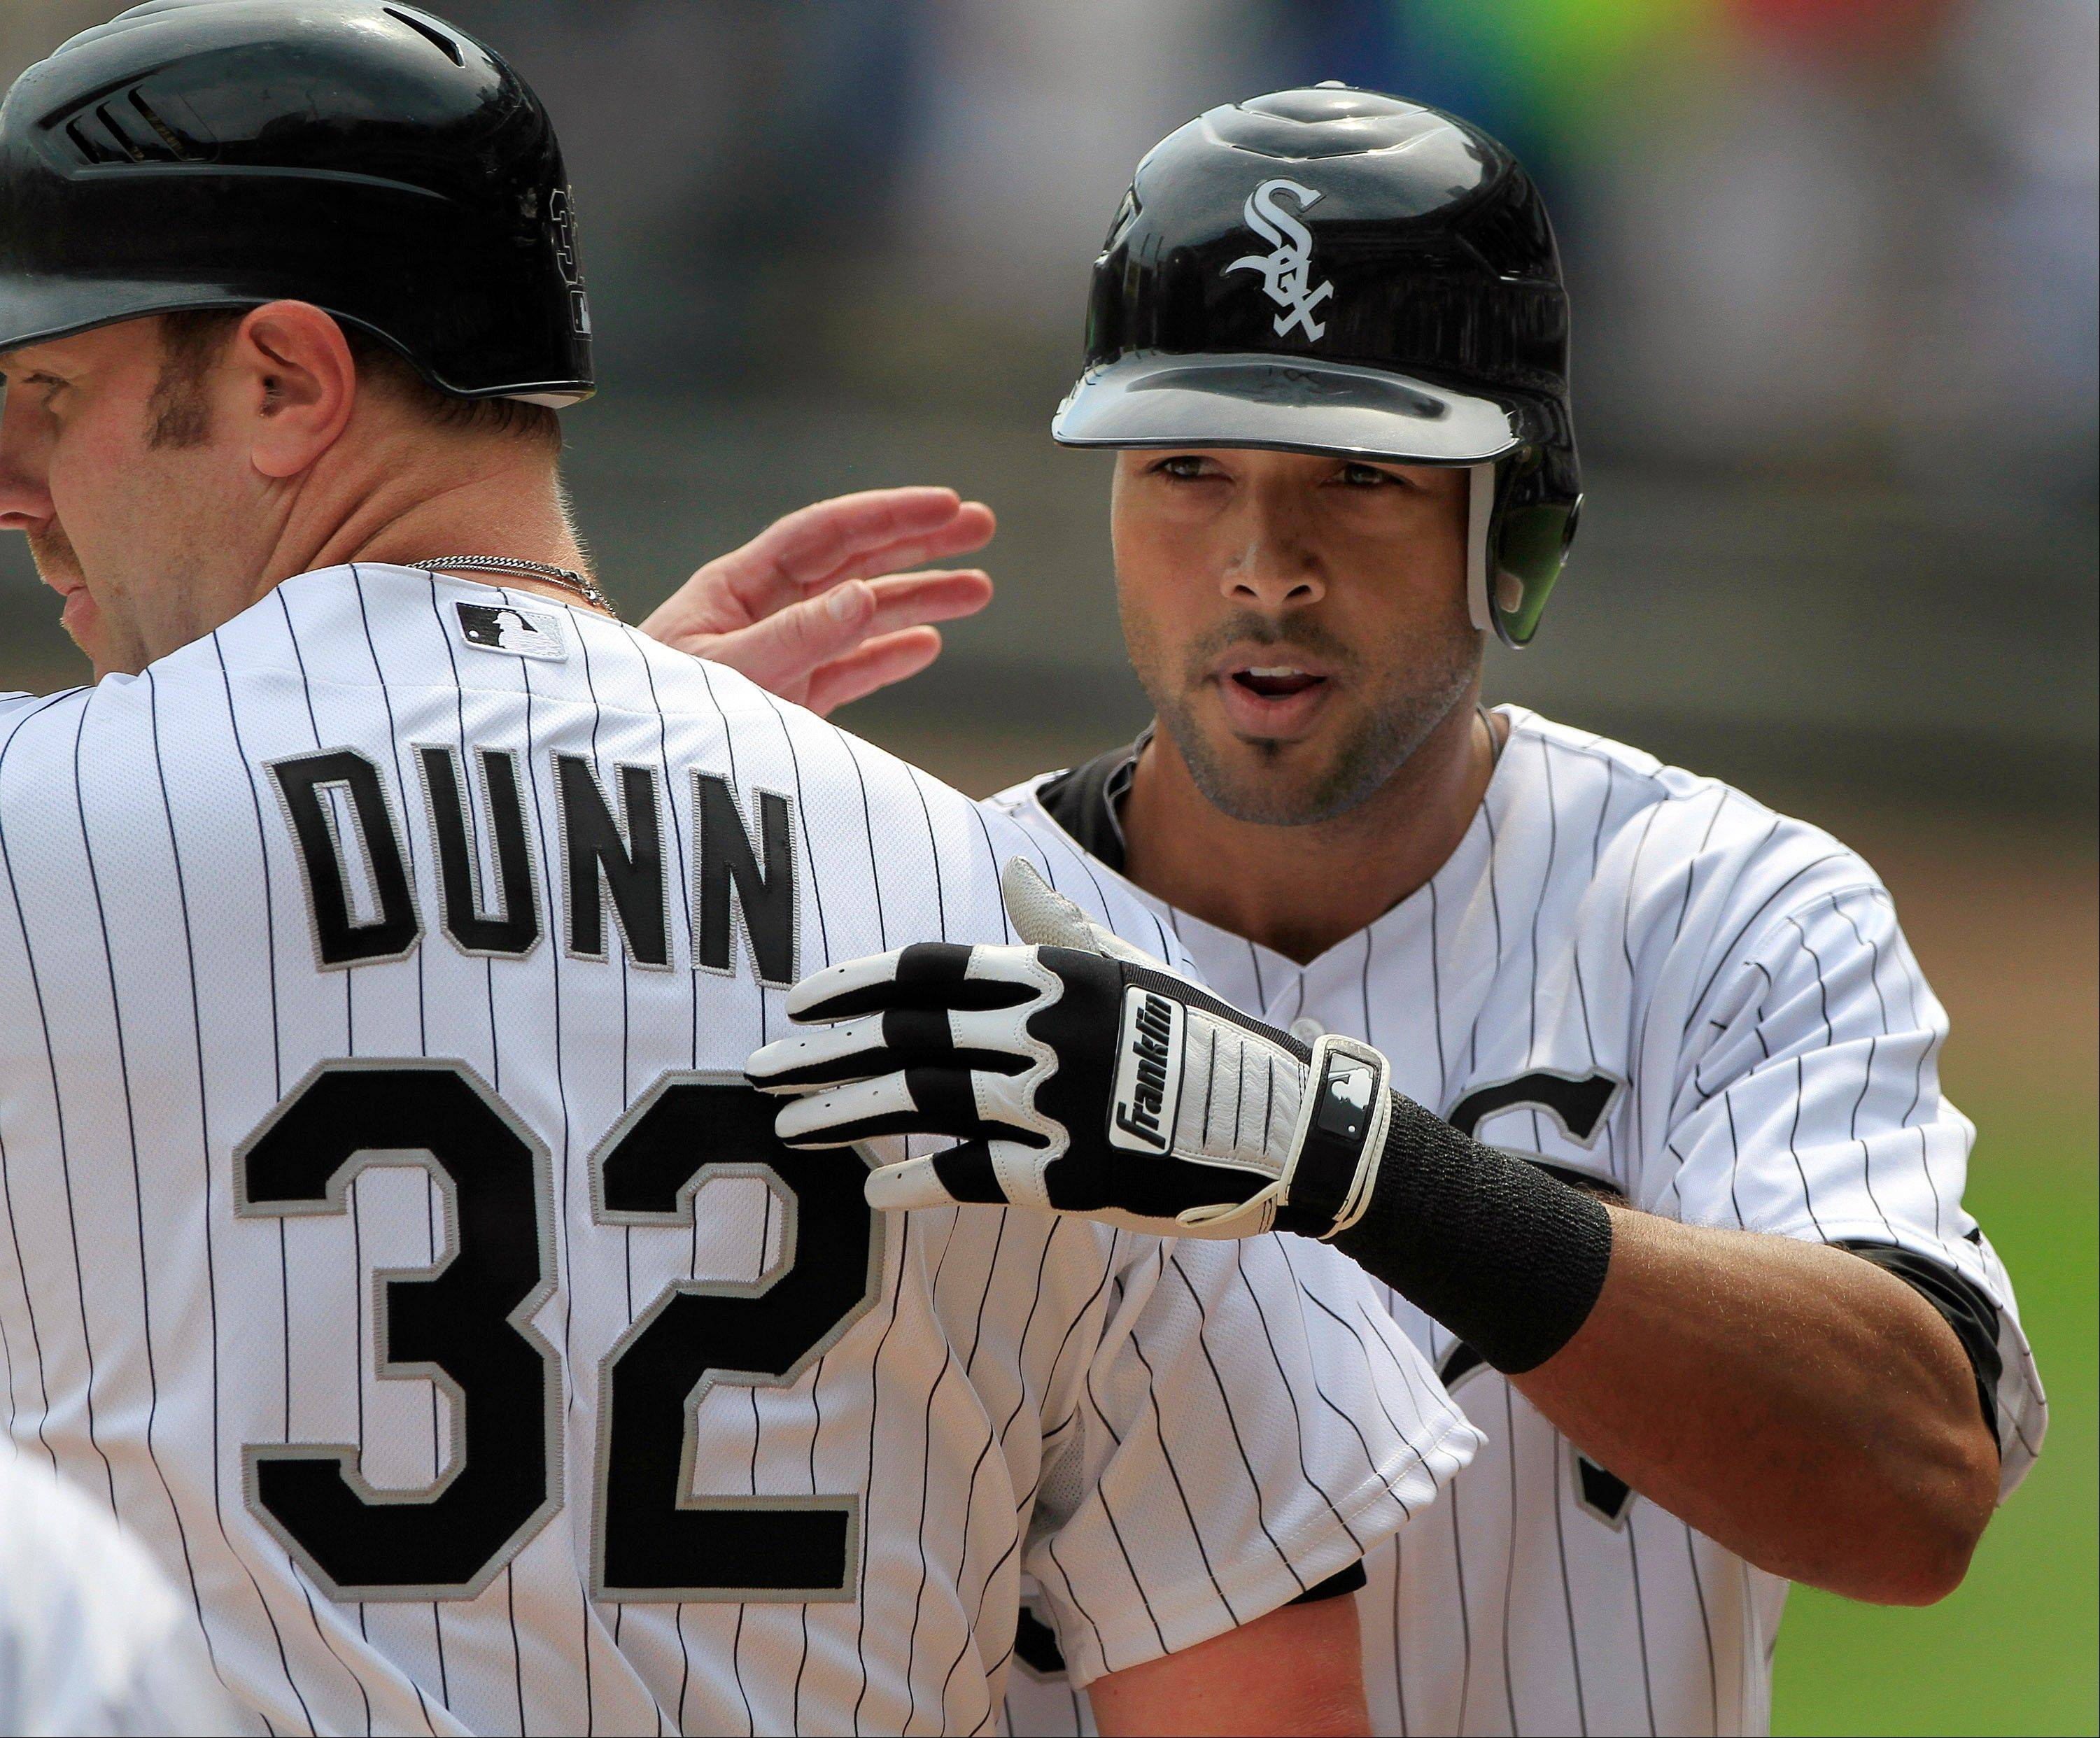 The White Sox' Alex Rios, right, congratulated by teammate Adam Dunn after hitting a grand slam against the Minnesota Twins in early September.